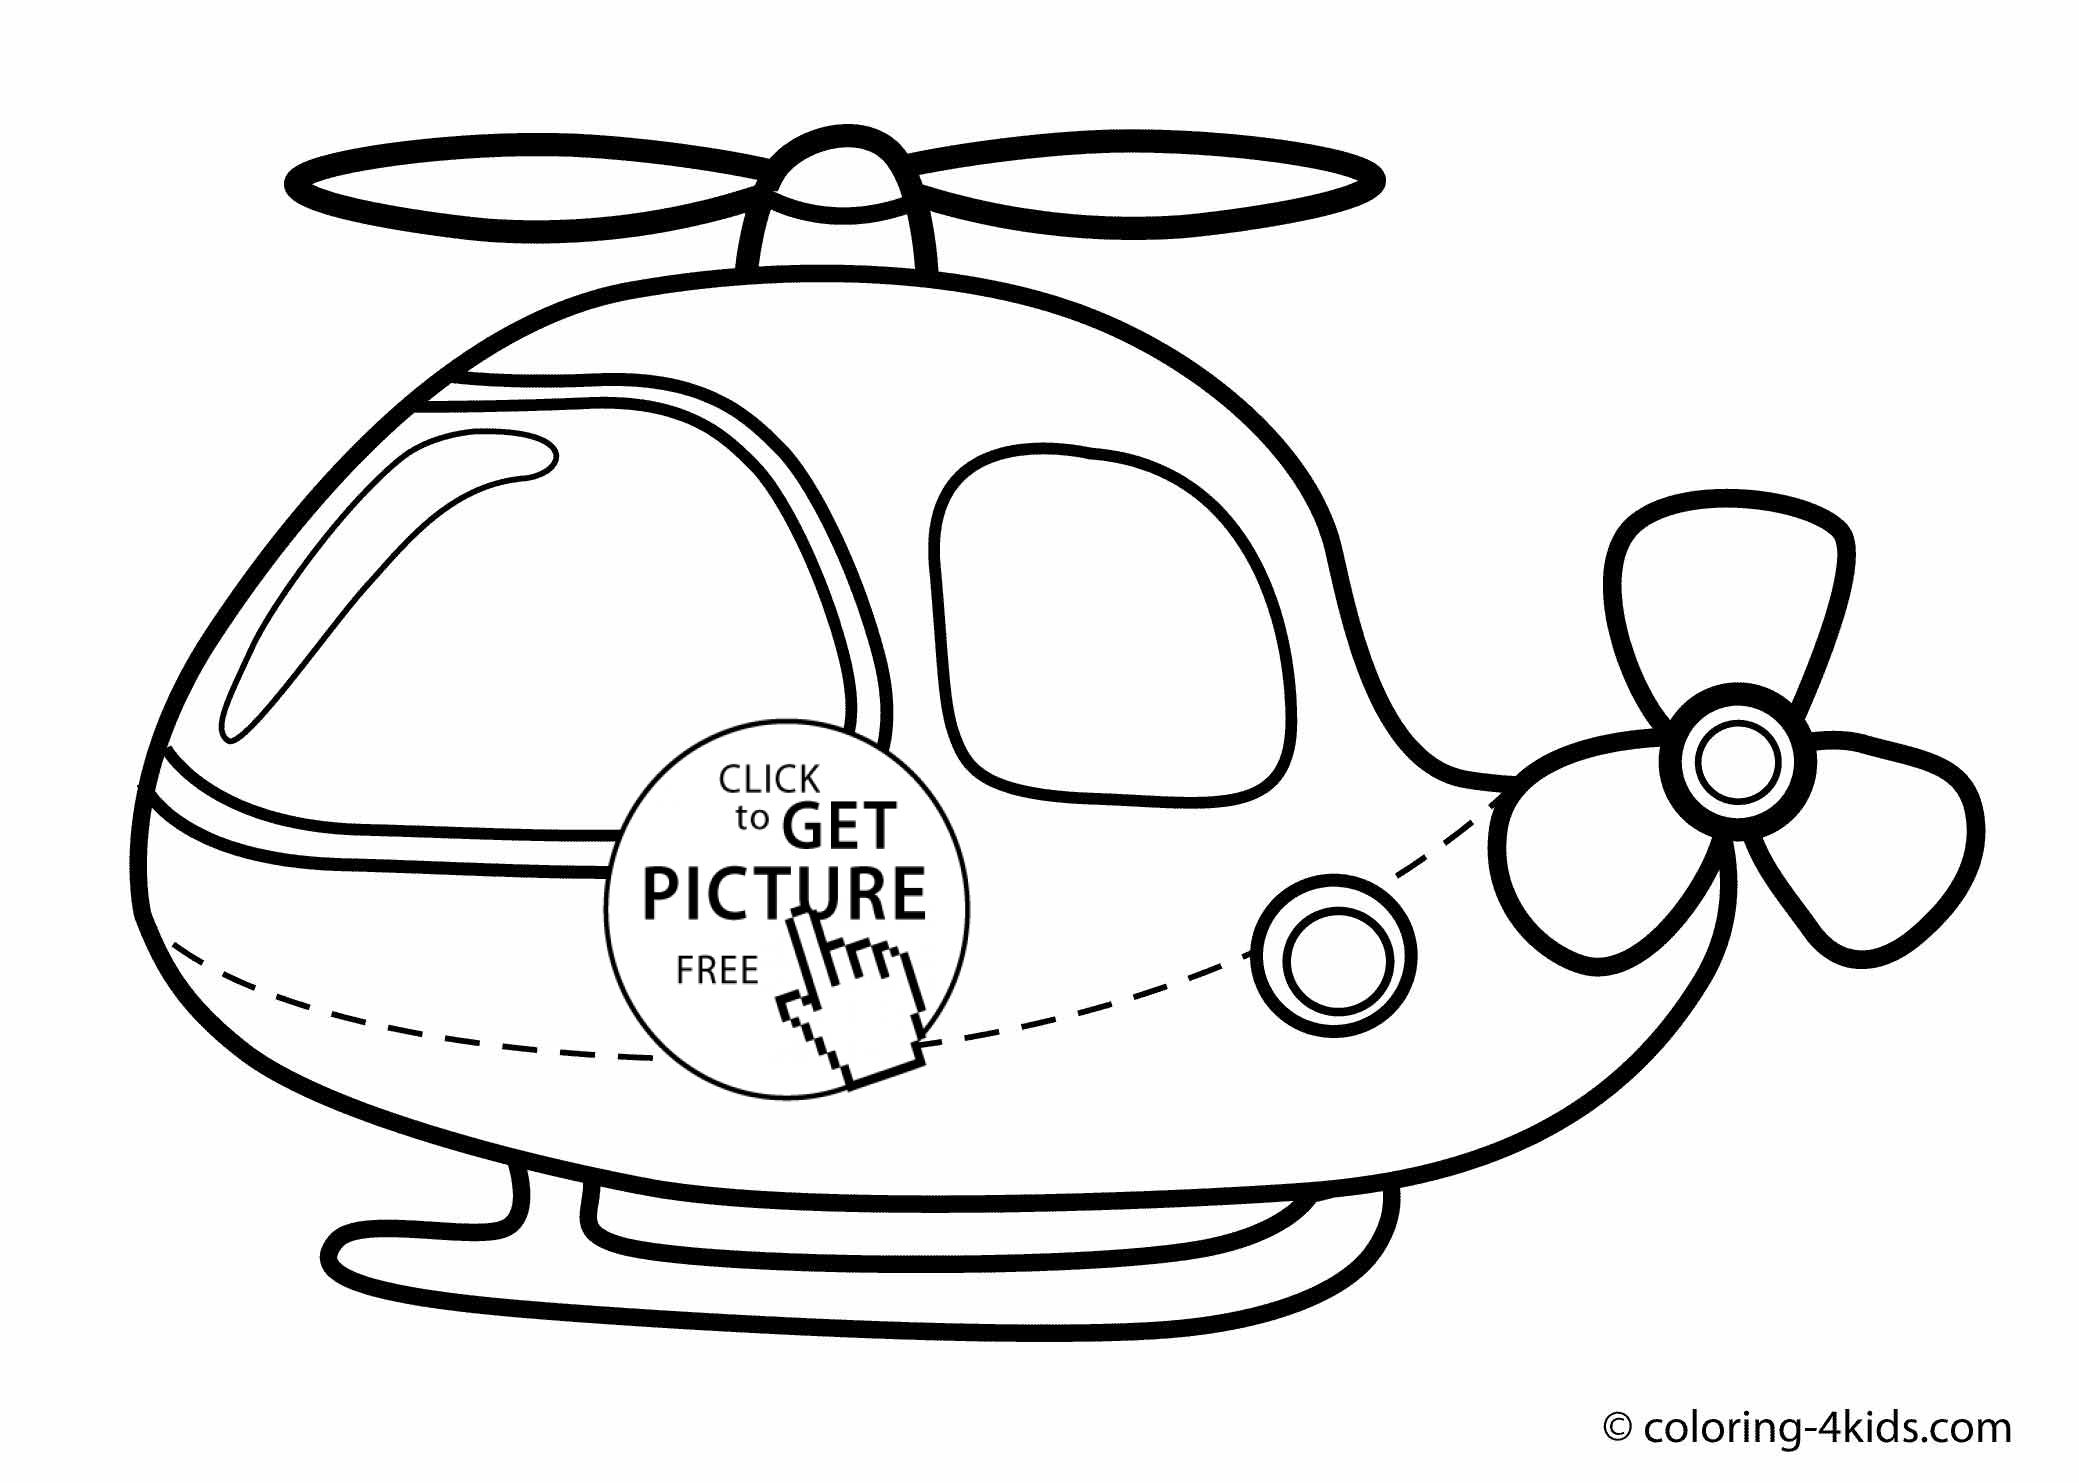 Drawn helicopter colouring page Books Helicopter Art Book Kids